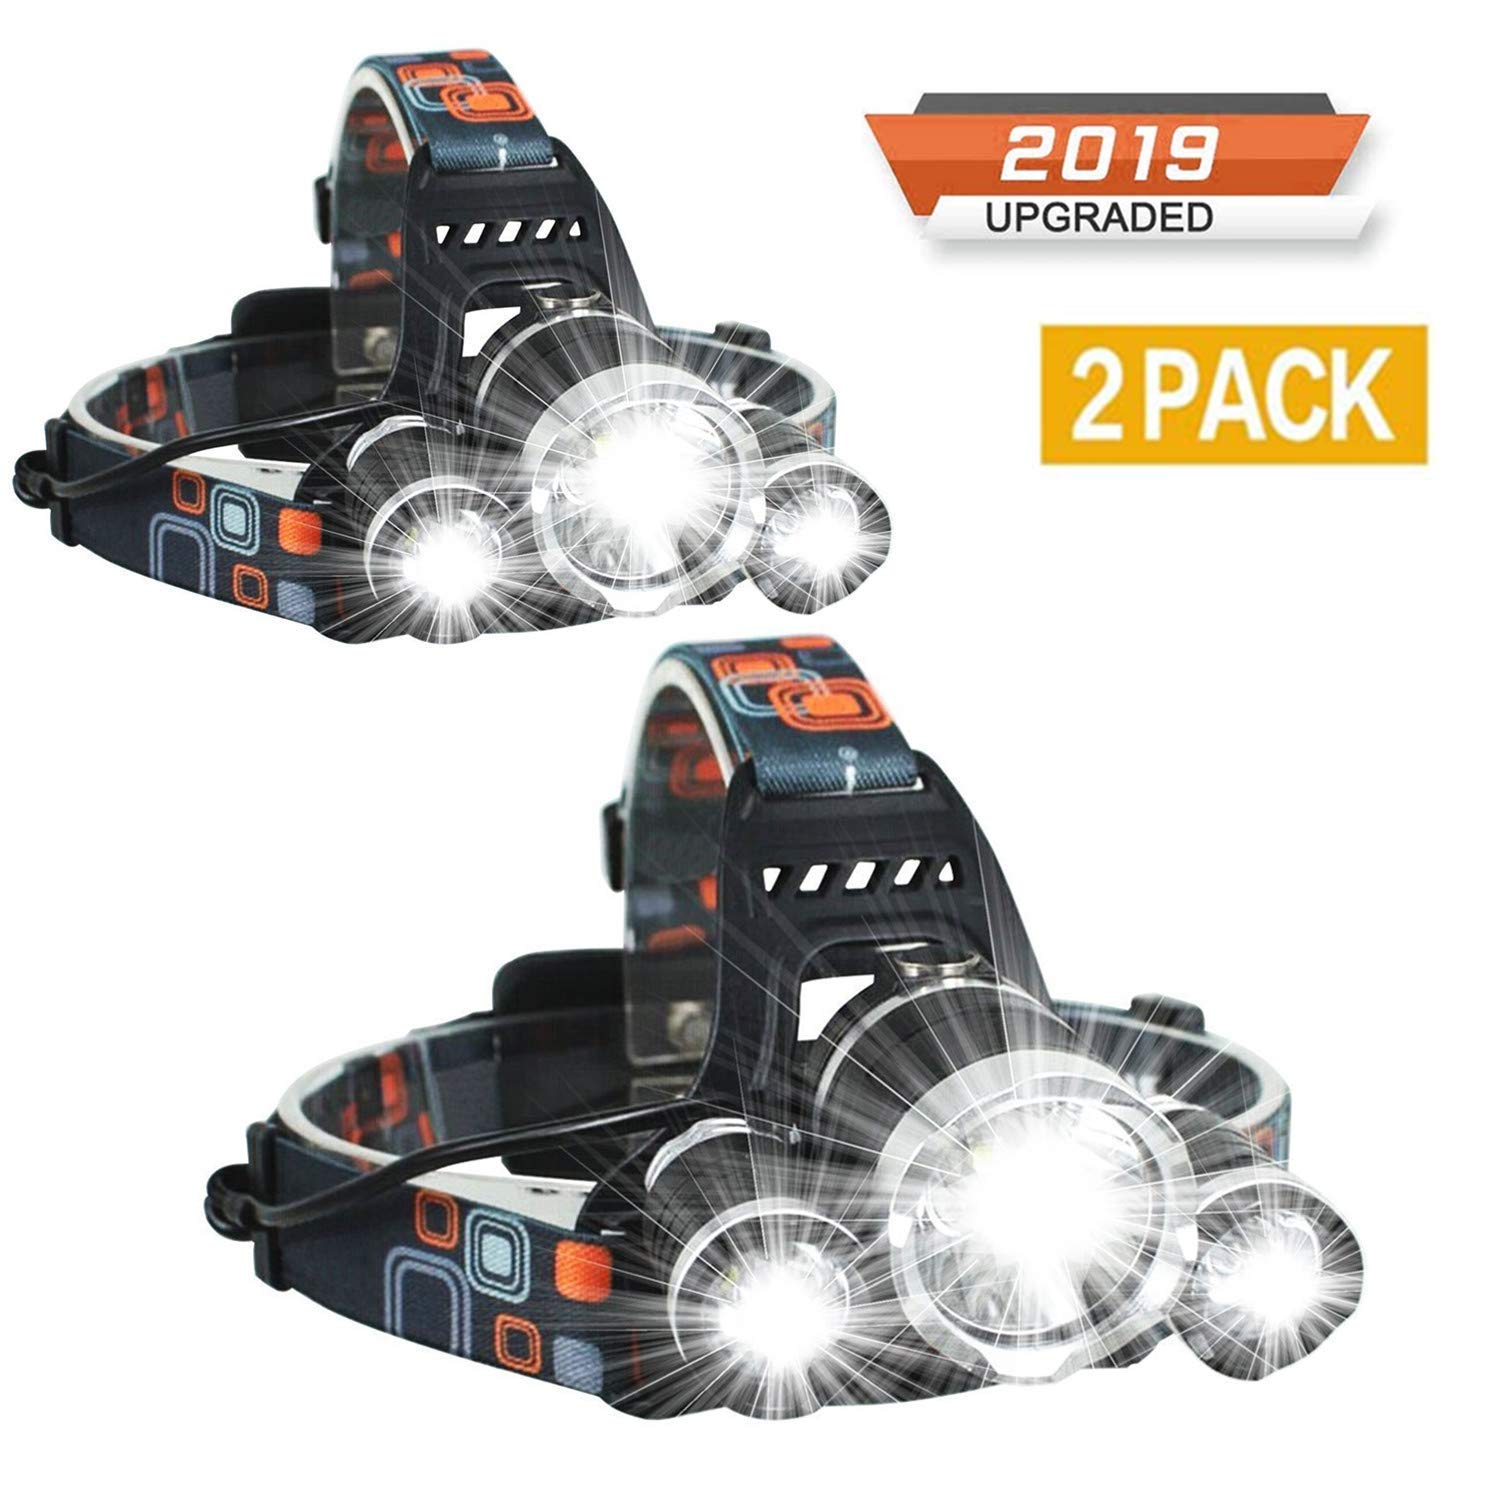 Newest Headlamp Flashlight 10000 Lumen,Best IMPROVED LED with Rechargeable Battery, Bright Head Lights,Waterproof Hard Hat Light,Fishing Head Lamp,Hunting headlamp,Camping headlamp (2Pack Headlamp) by Molo